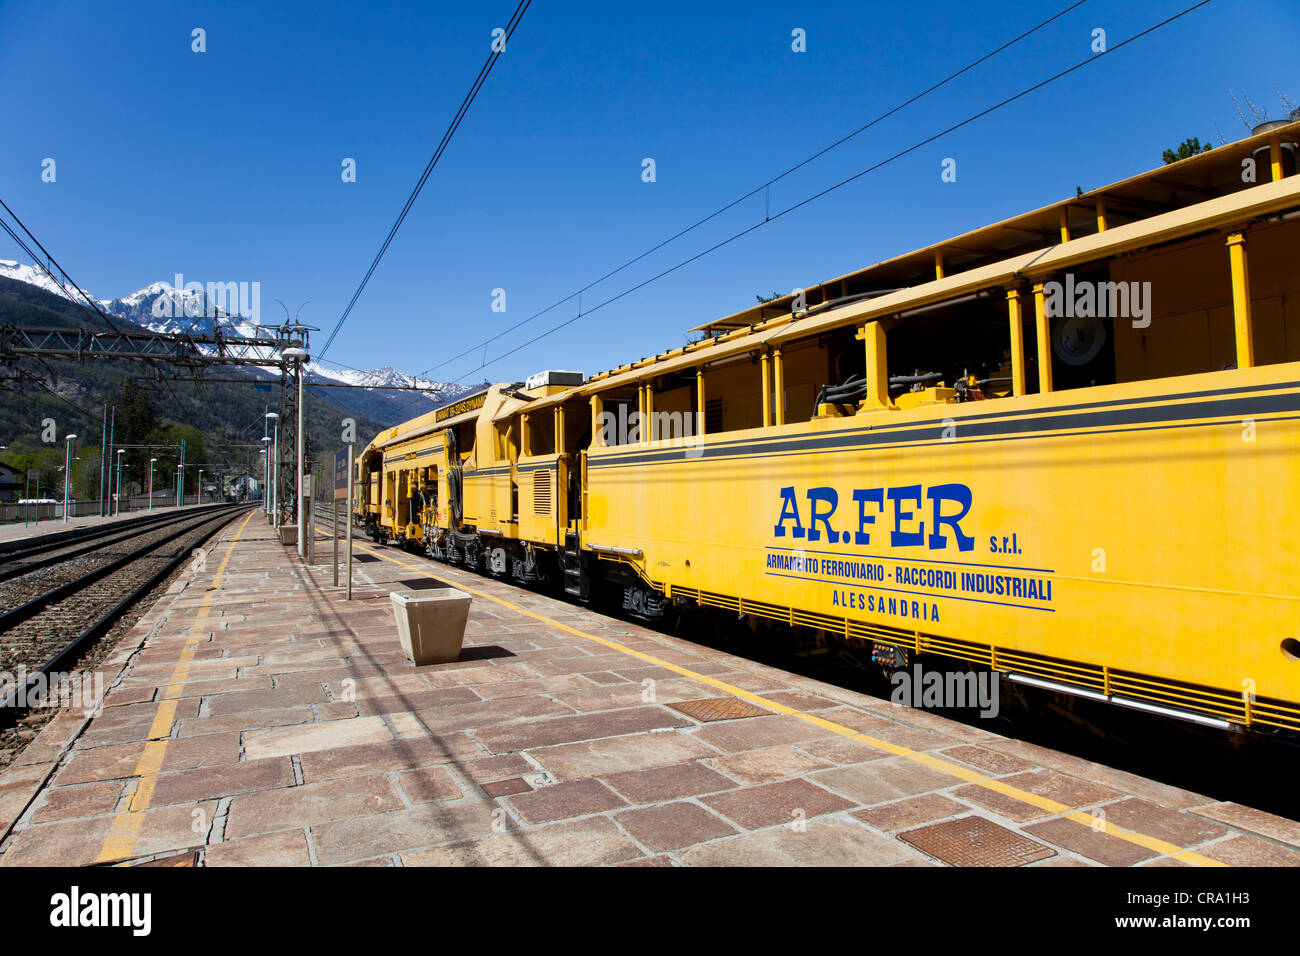 Travel By Train Italy Rail travel in italy stock photos rail travel in italy stock rail maintenance train in oulx station piemonte italy stock image sisterspd